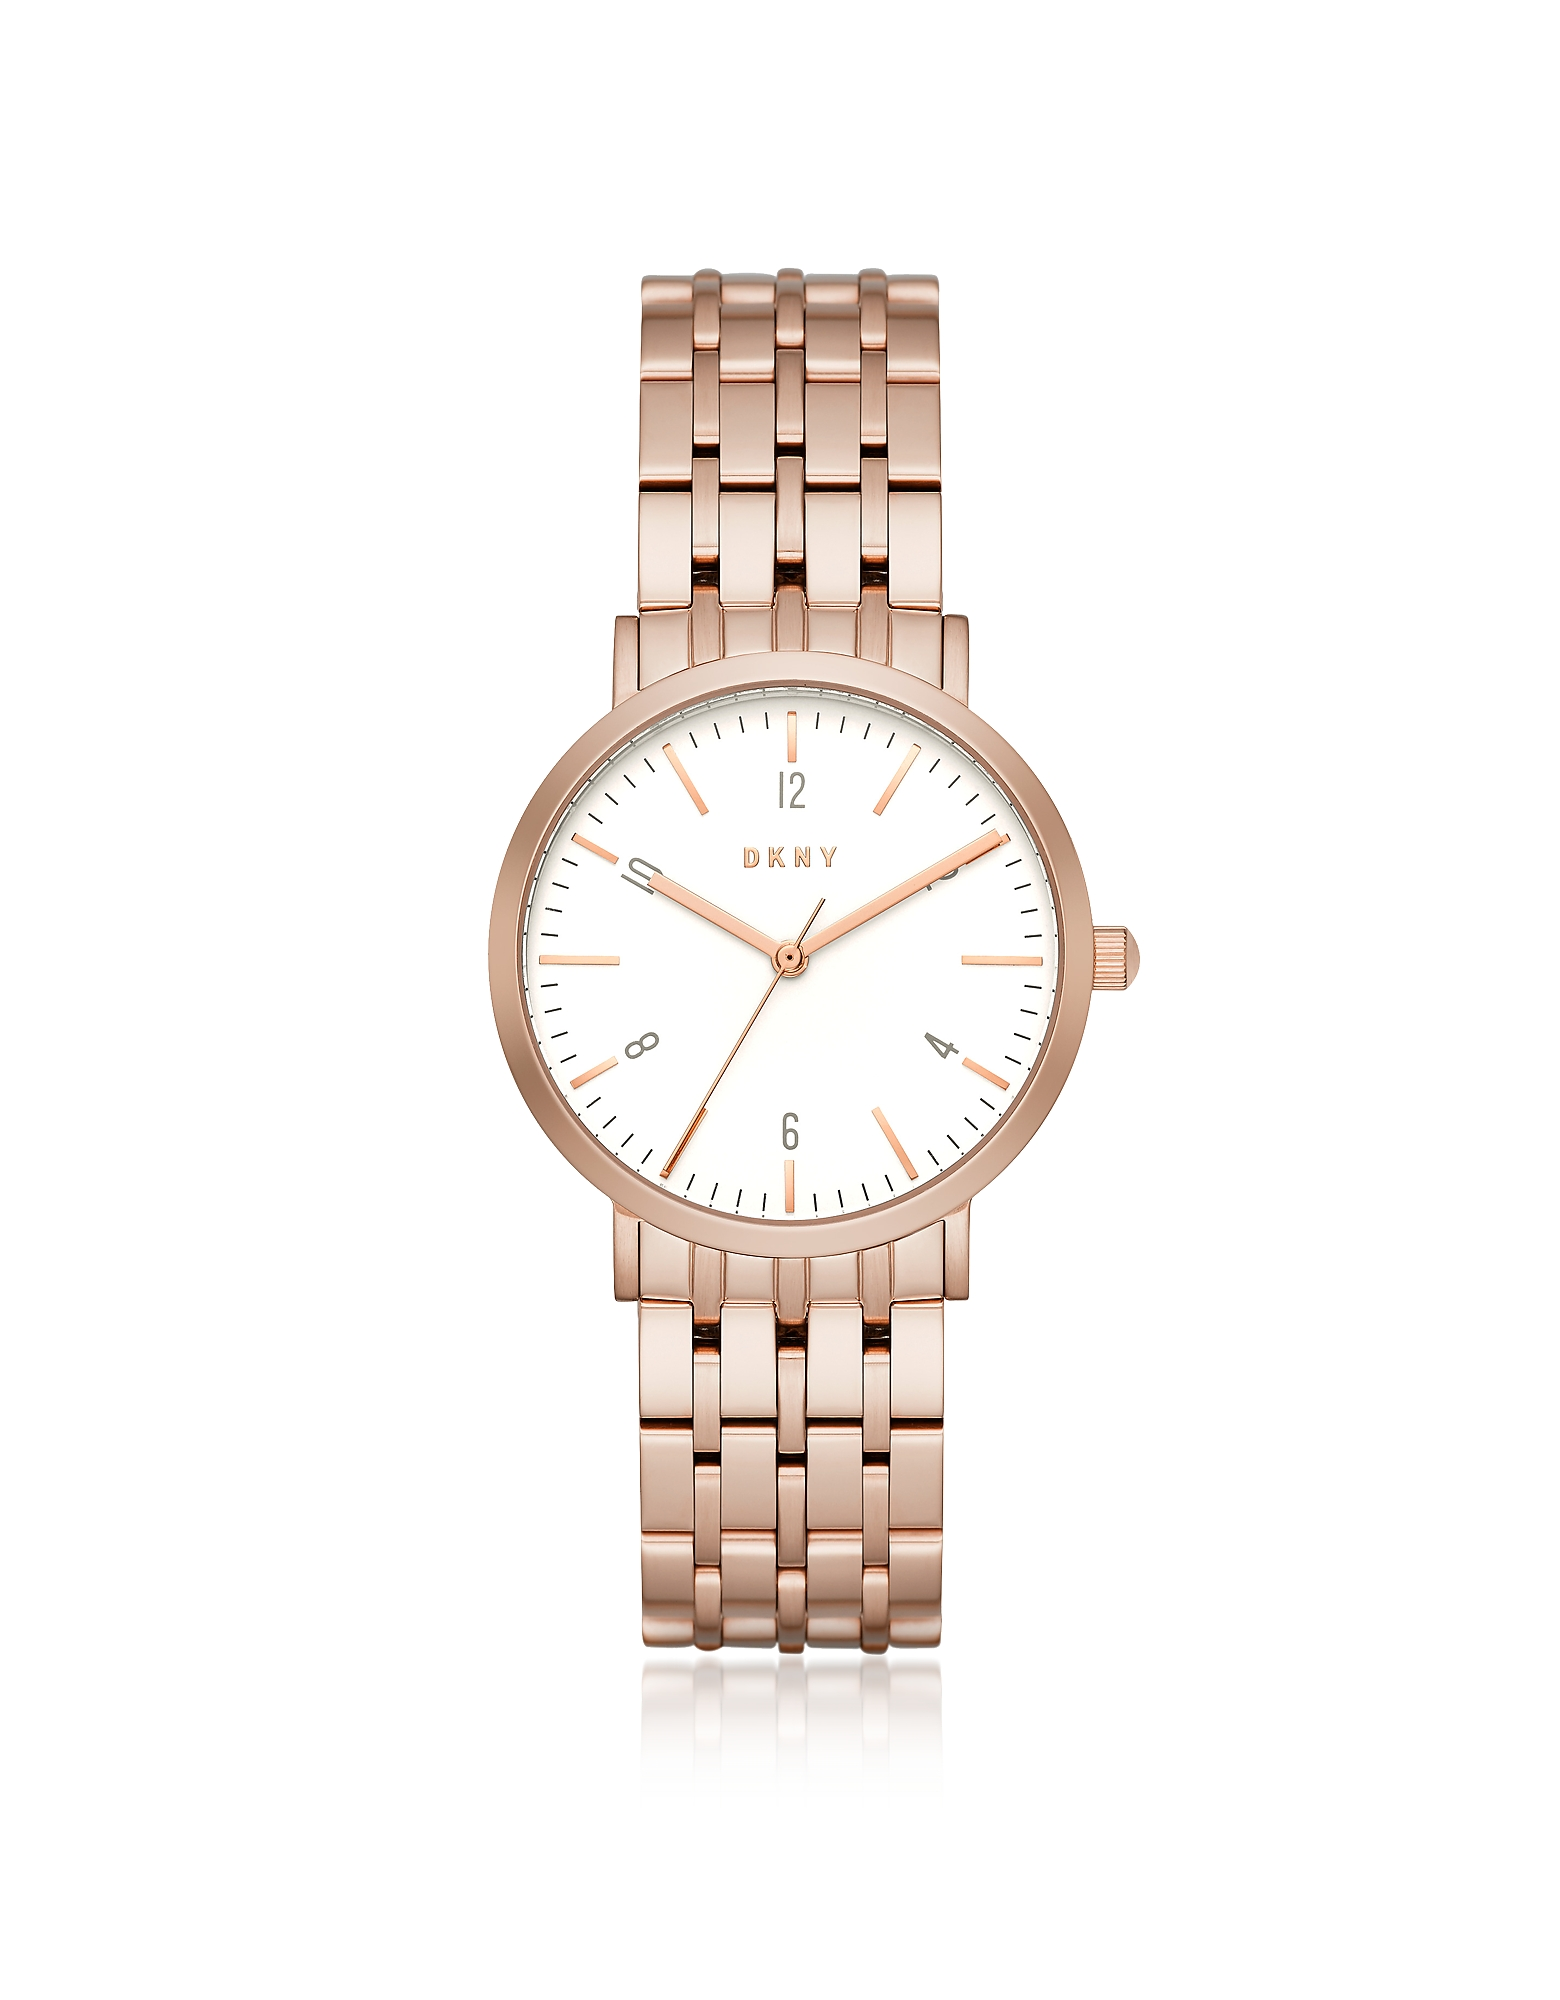 DKNY Women's Watches, Minetta Rose Gold Tone Women's Watch